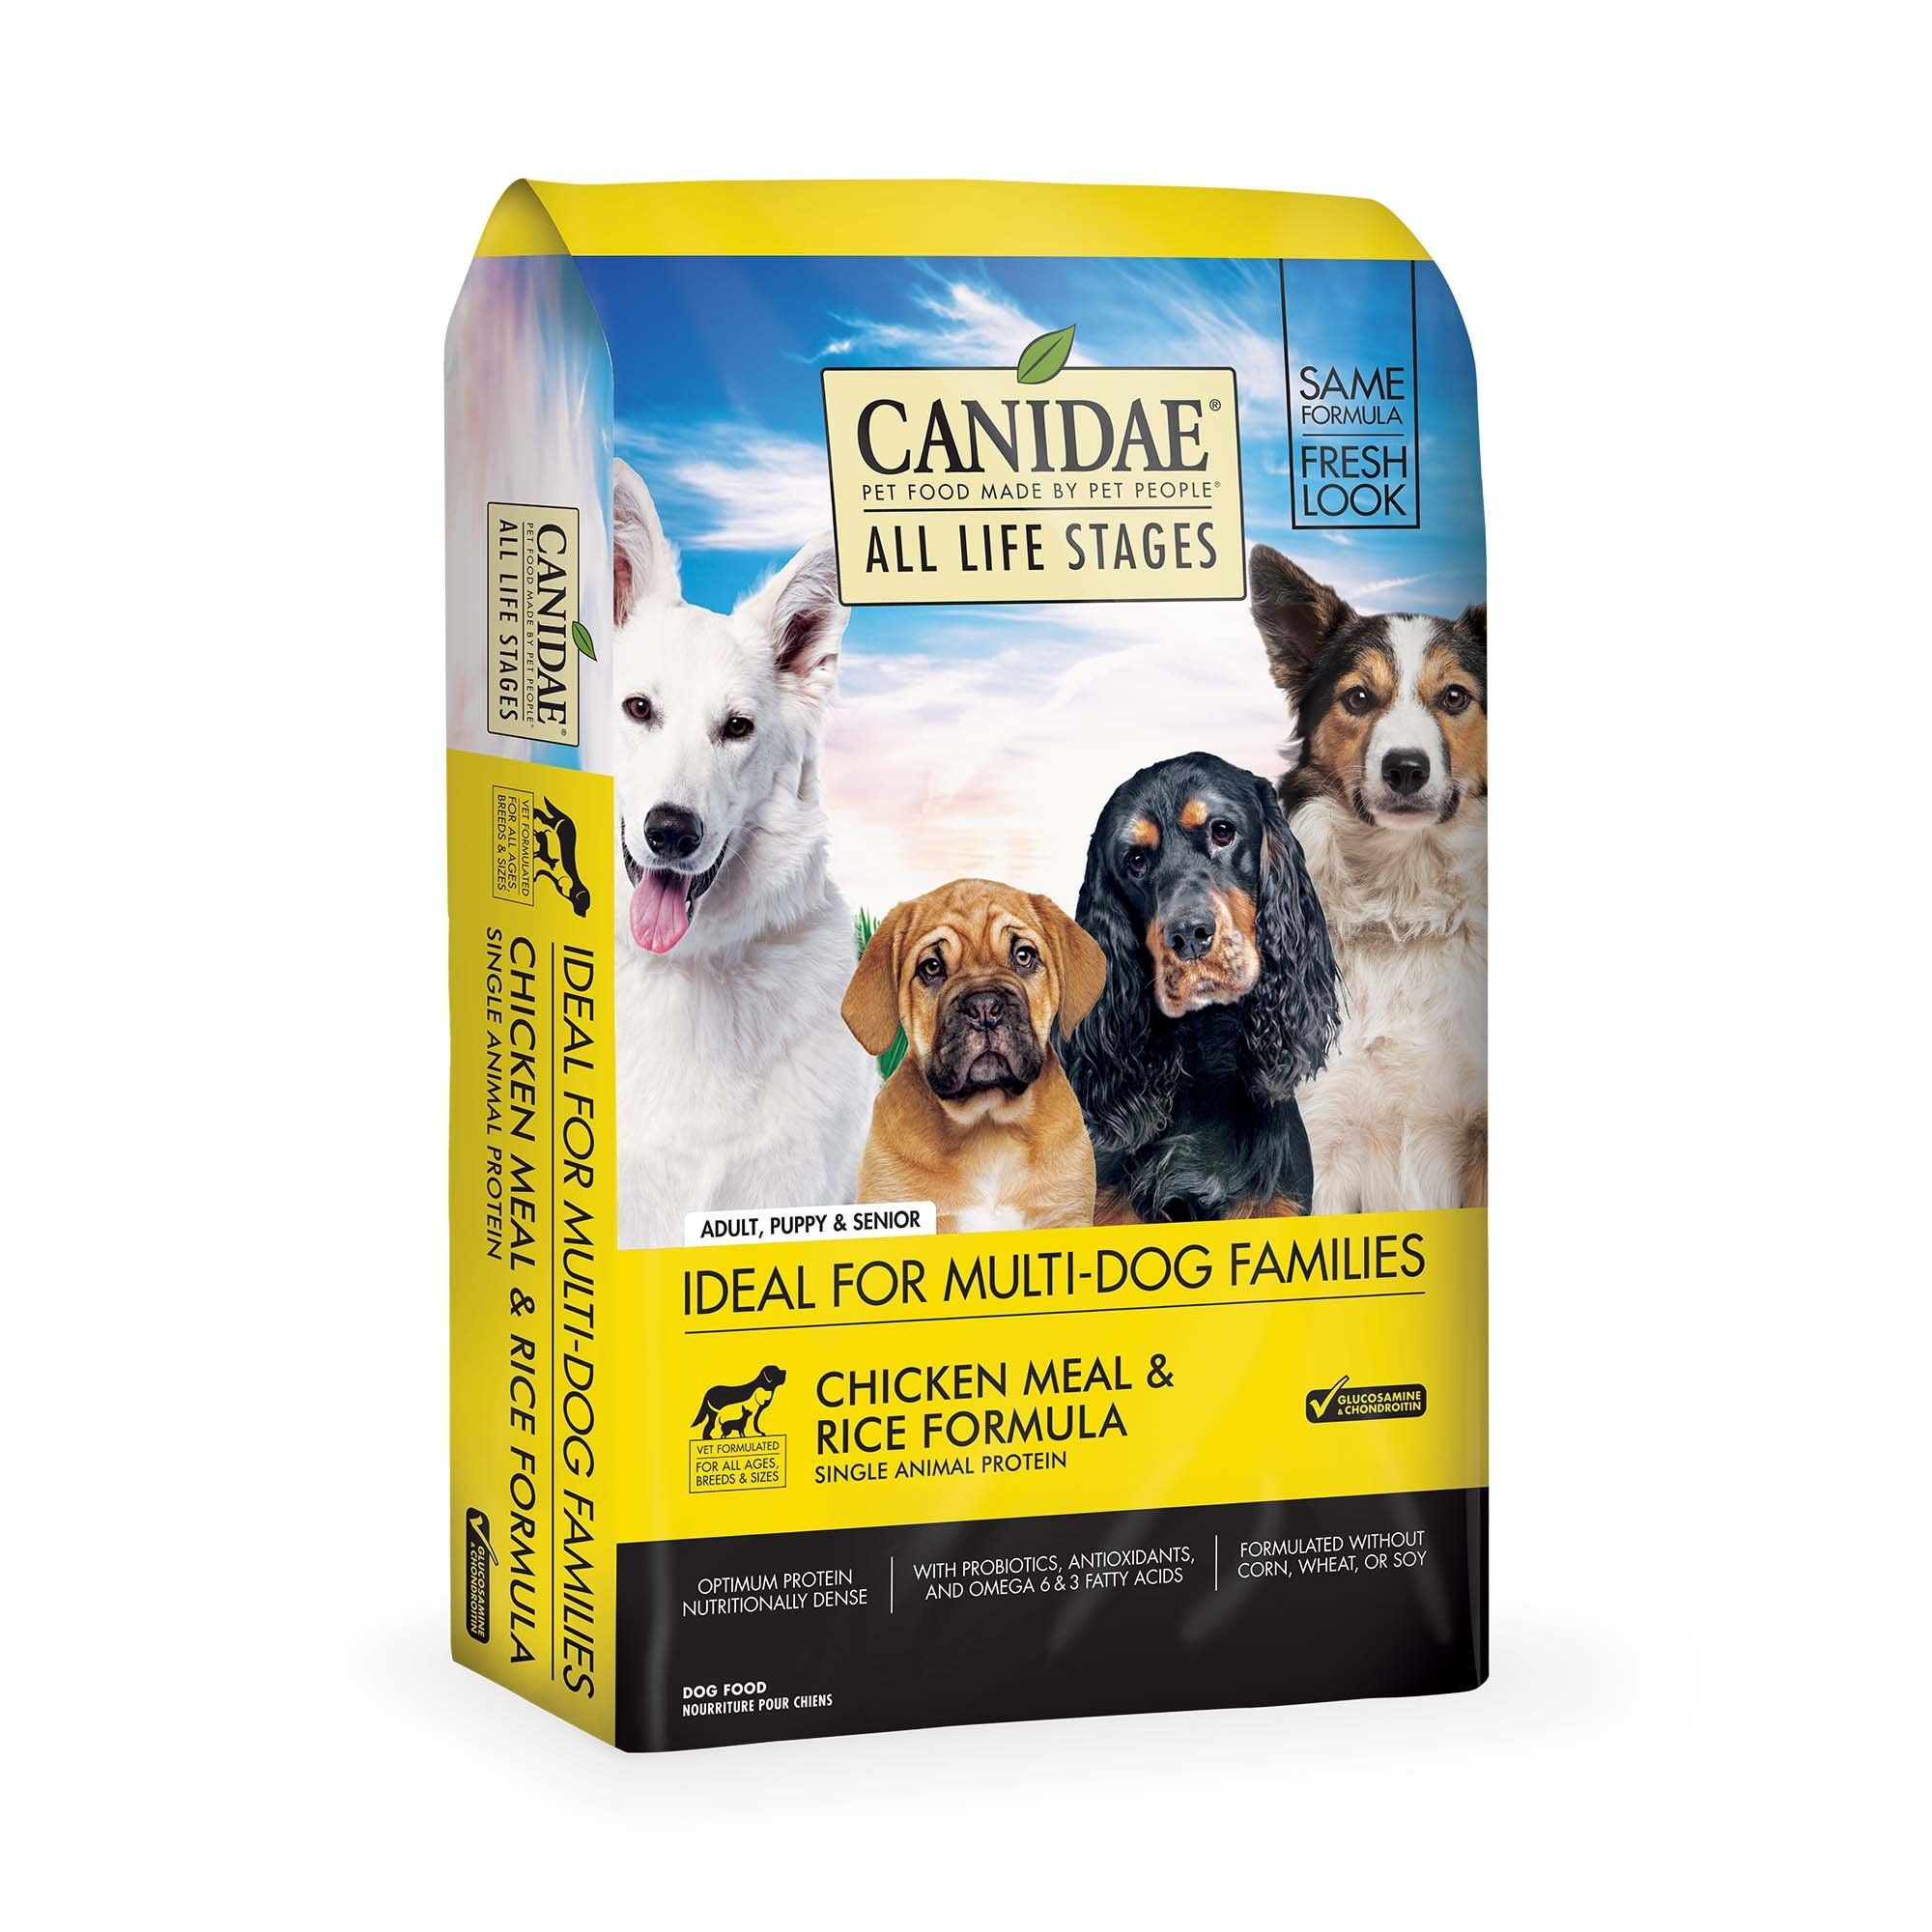 Canidae All Life Stages Chicken Meal Rice Formula Dog Food 5 Lbs